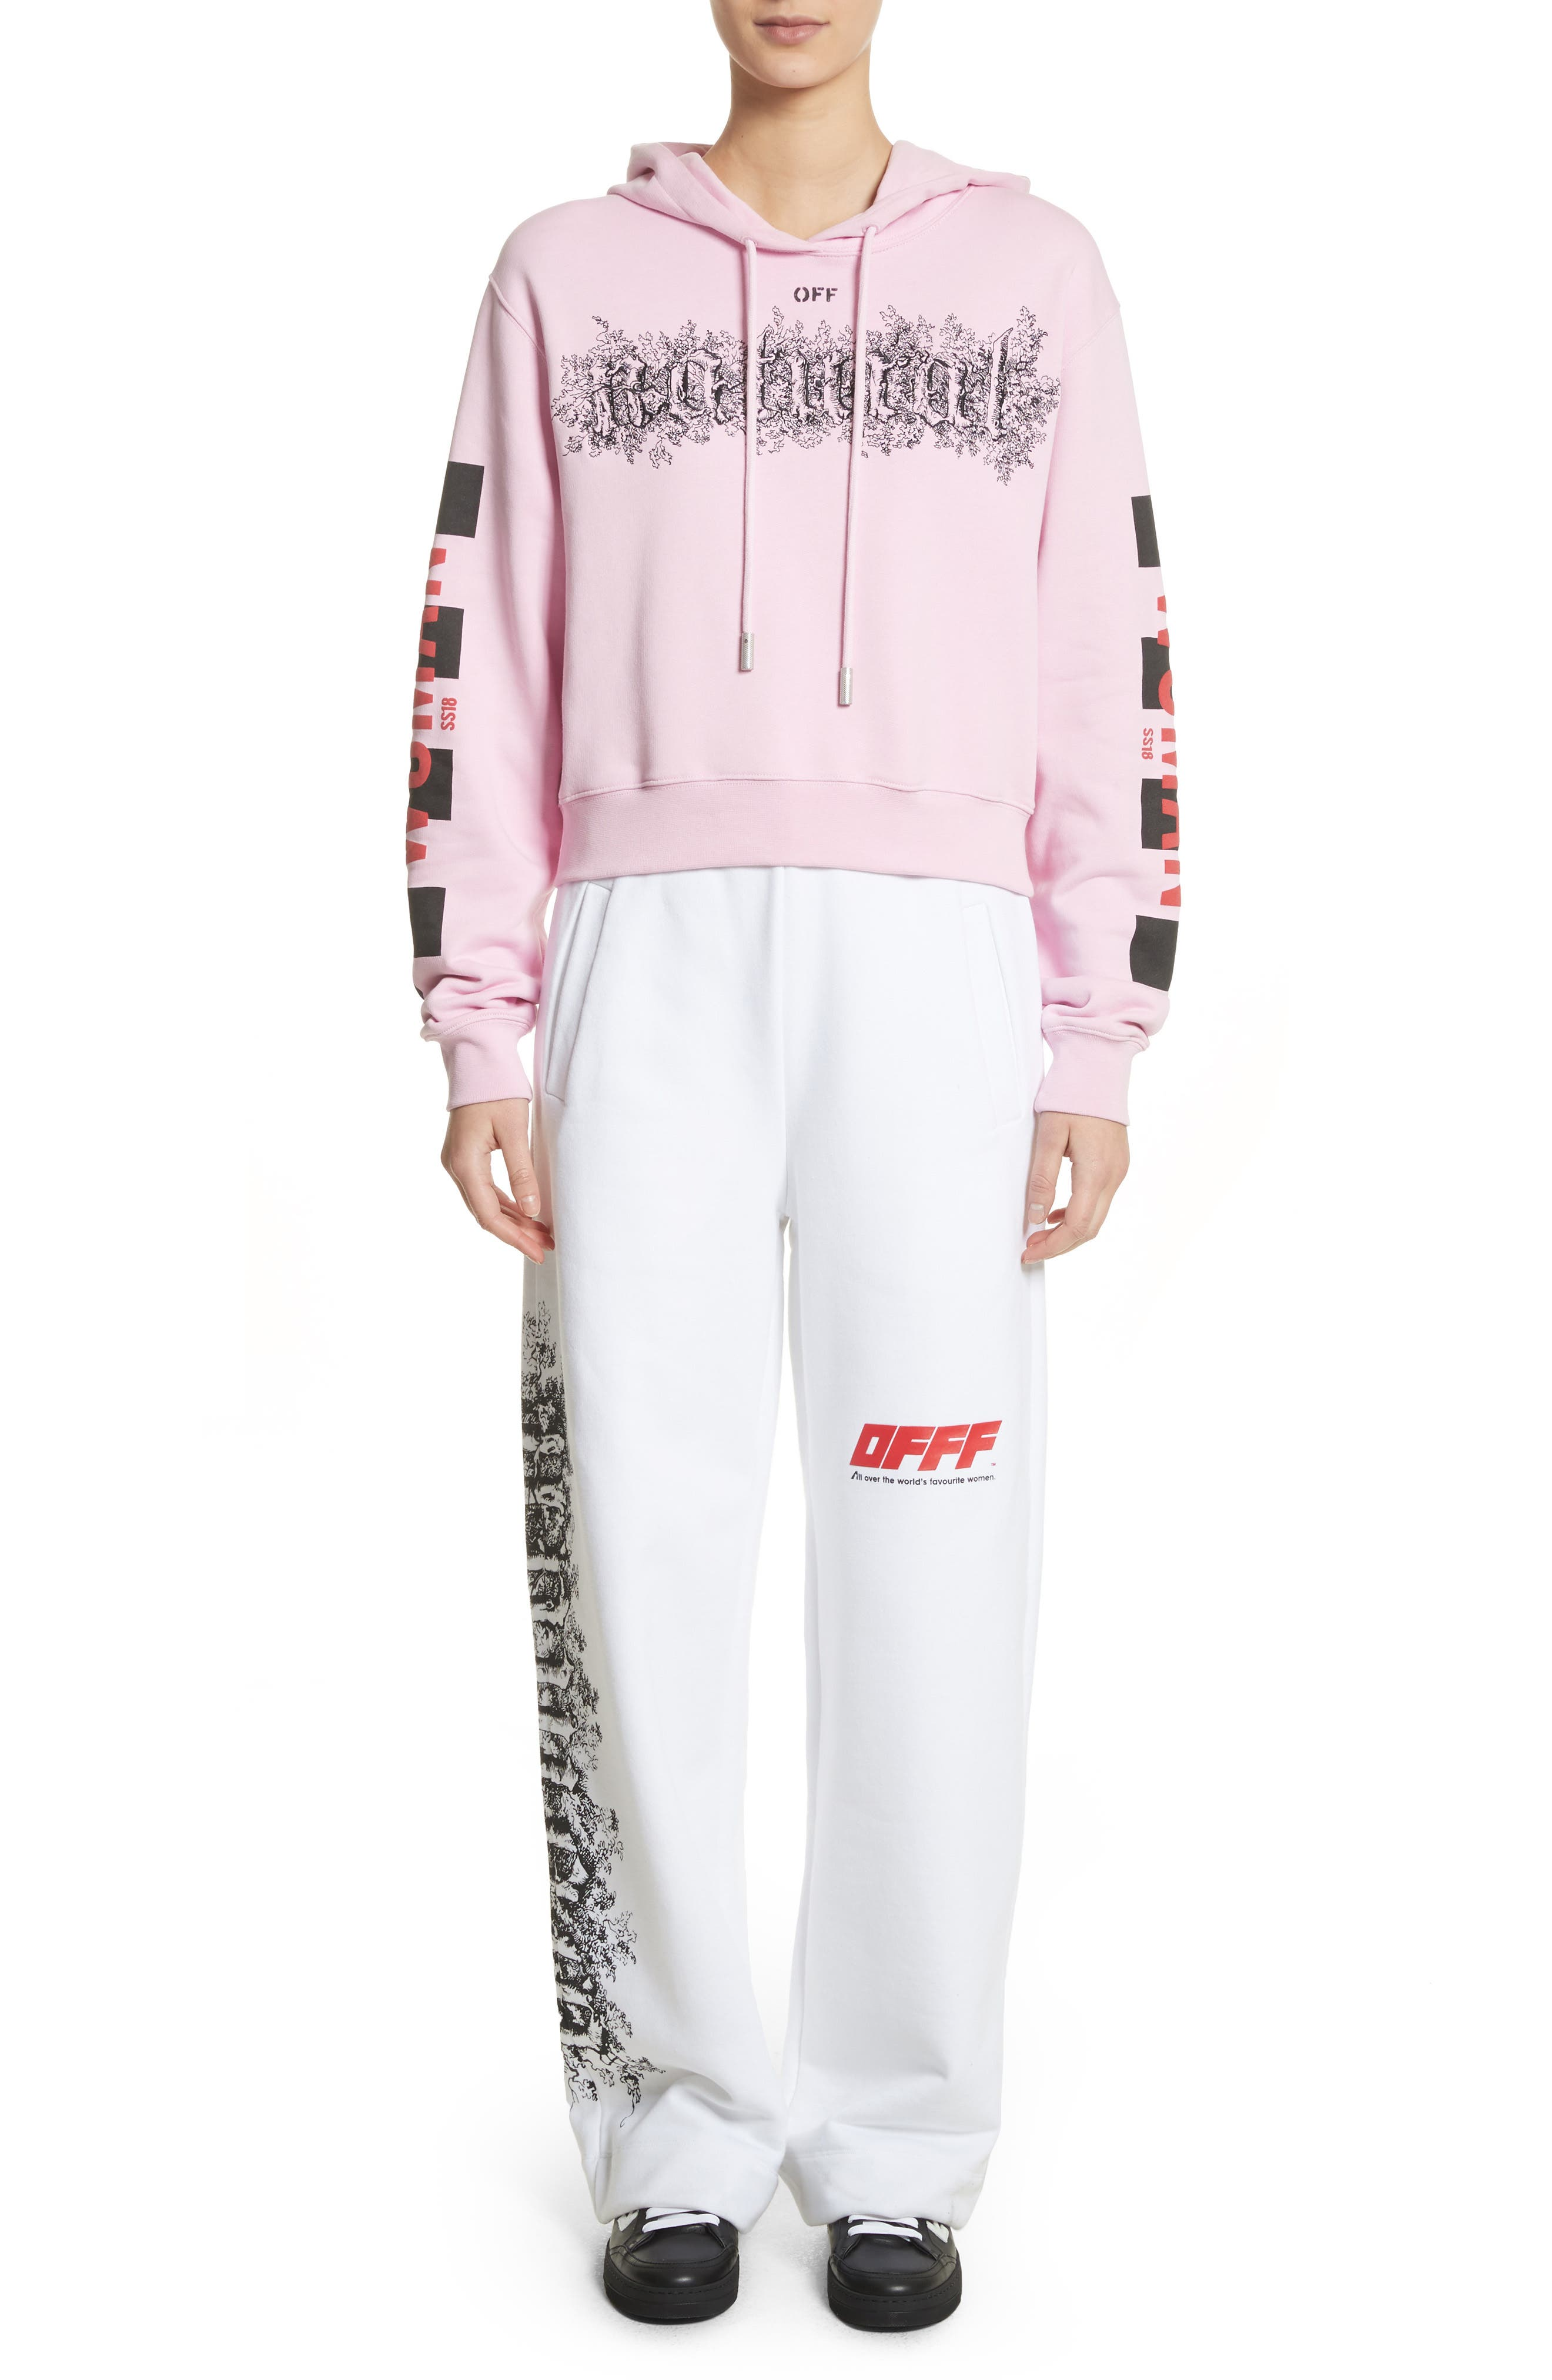 OFFF Sweatpants,                             Alternate thumbnail 8, color,                             White Red